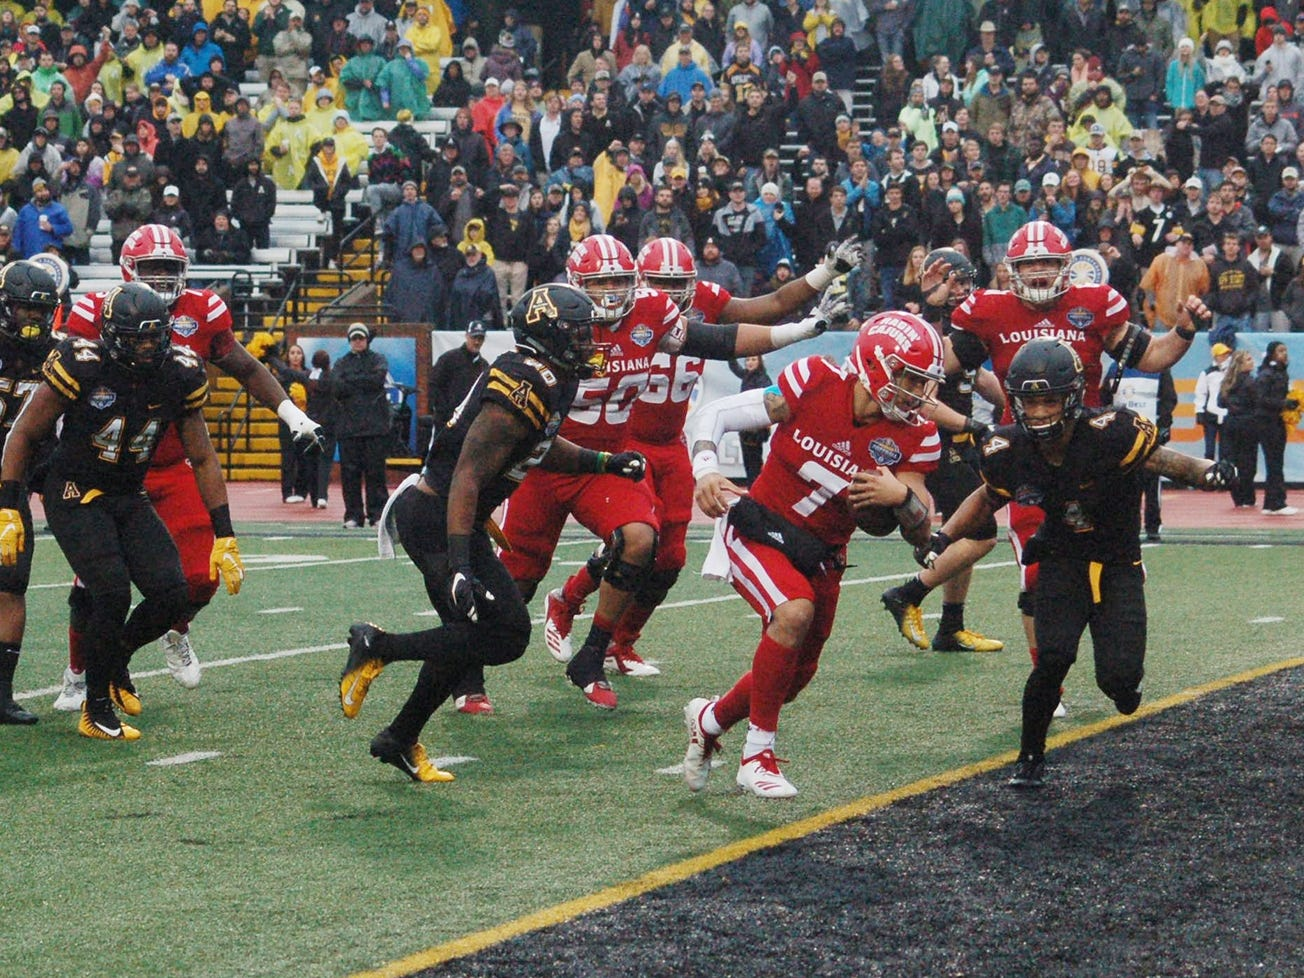 UL quarterback Andre Nunez scores a touchdown before Appalachian State's Clifton Duck (4) can reach him Saturday in the Sun Belt Championship in Boone, North Carolina.